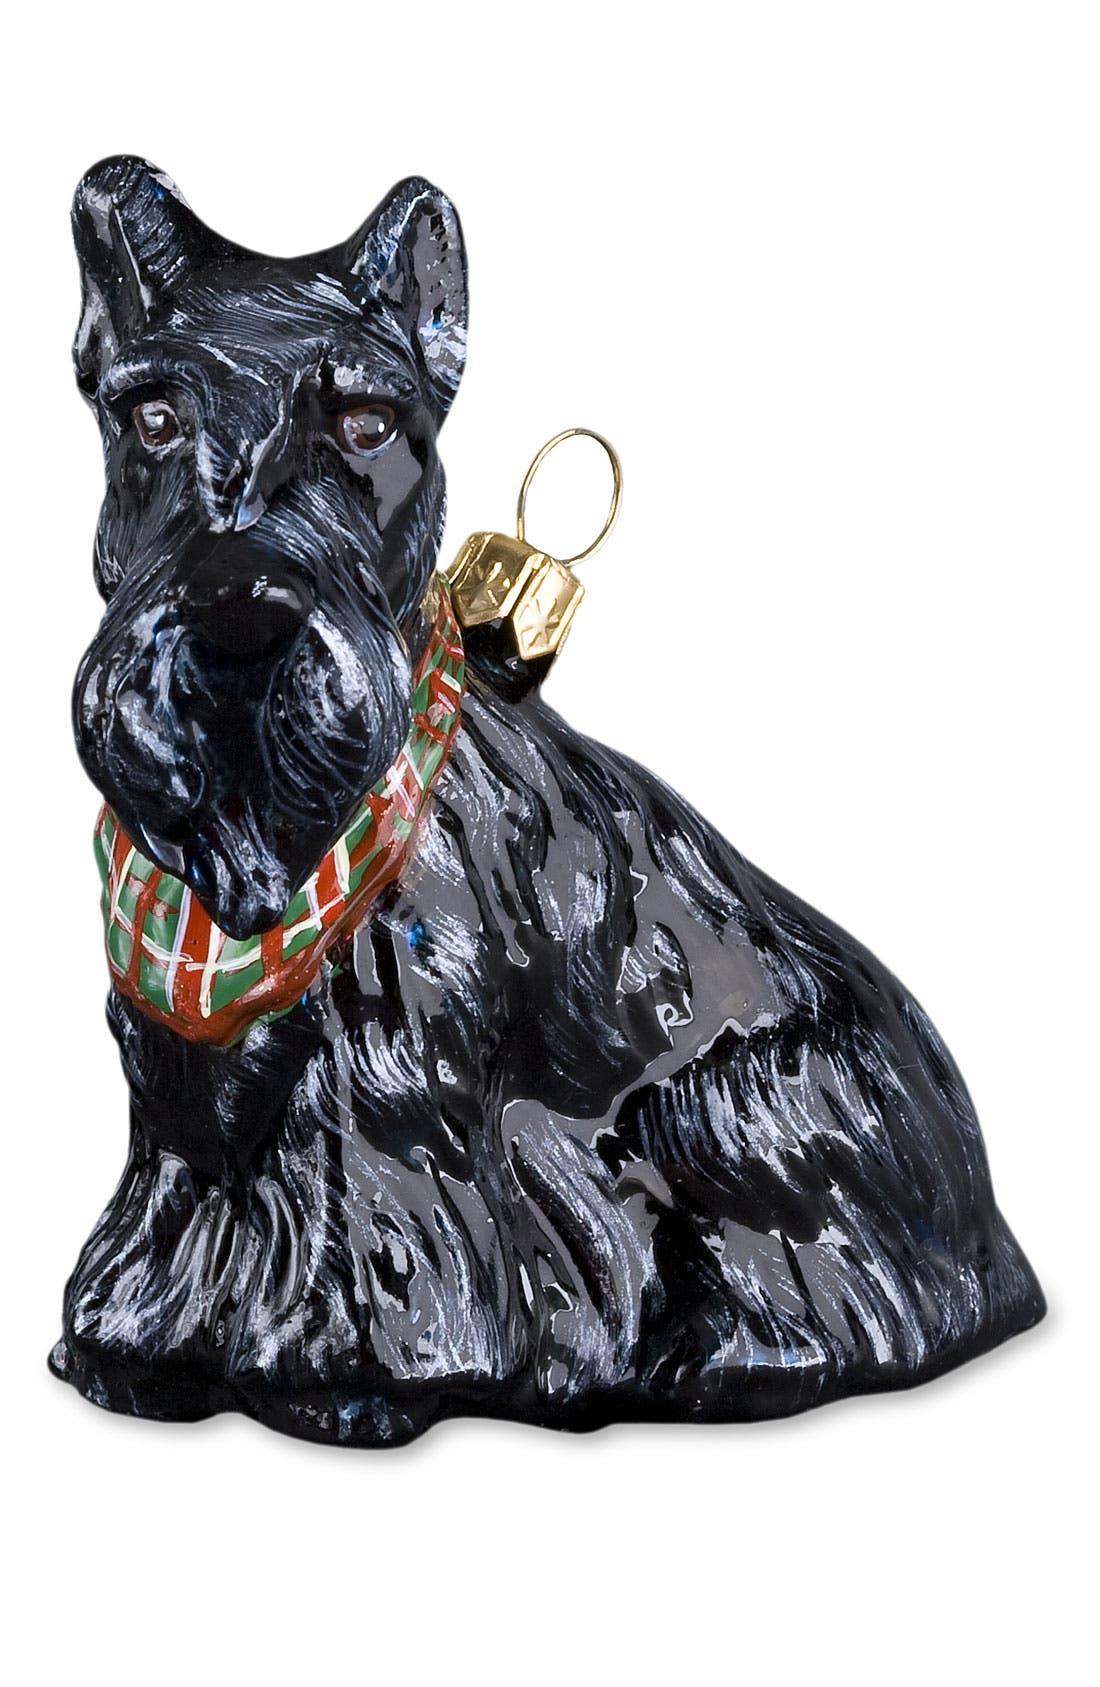 'Yorkie Puppy' Dog Ornament,                             Main thumbnail 1, color,                             960